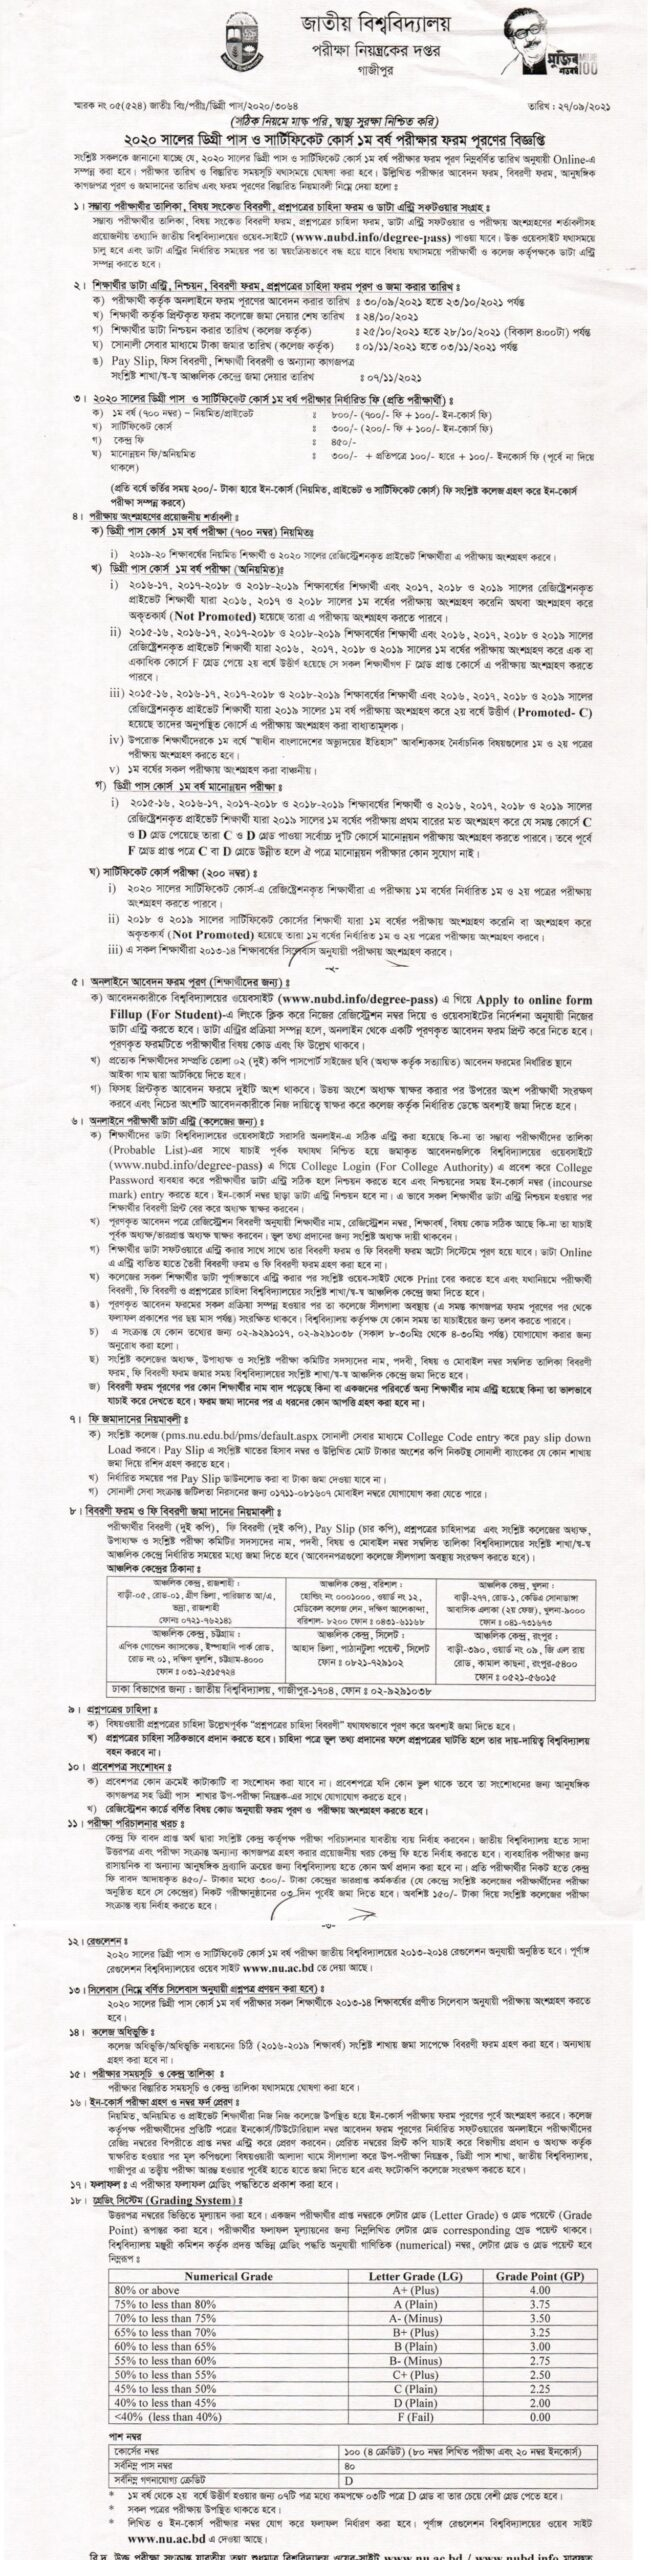 National University Degree 1st Year Exam Form Fill up 2021